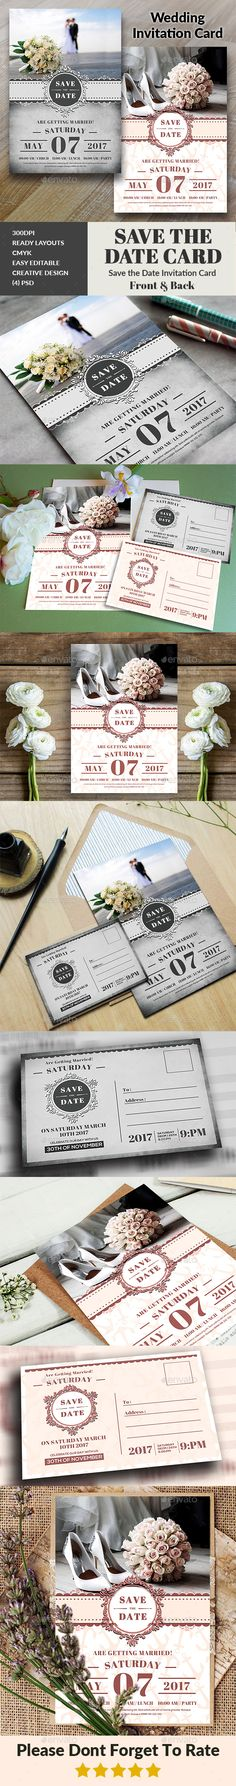 Buy Wedding Invitation by afjamaal on GraphicRiver. This Wedding Invitation Card is made in photoshop the files included are help file and photoshop . Free Wedding Invitation Templates, Wedding Invitation Card Design, Invitation Text, Card Box Wedding, Jewel Tone Wedding, Barn Wedding Decorations, Wedding Games, Wedding Ideas, Save The Date Cards